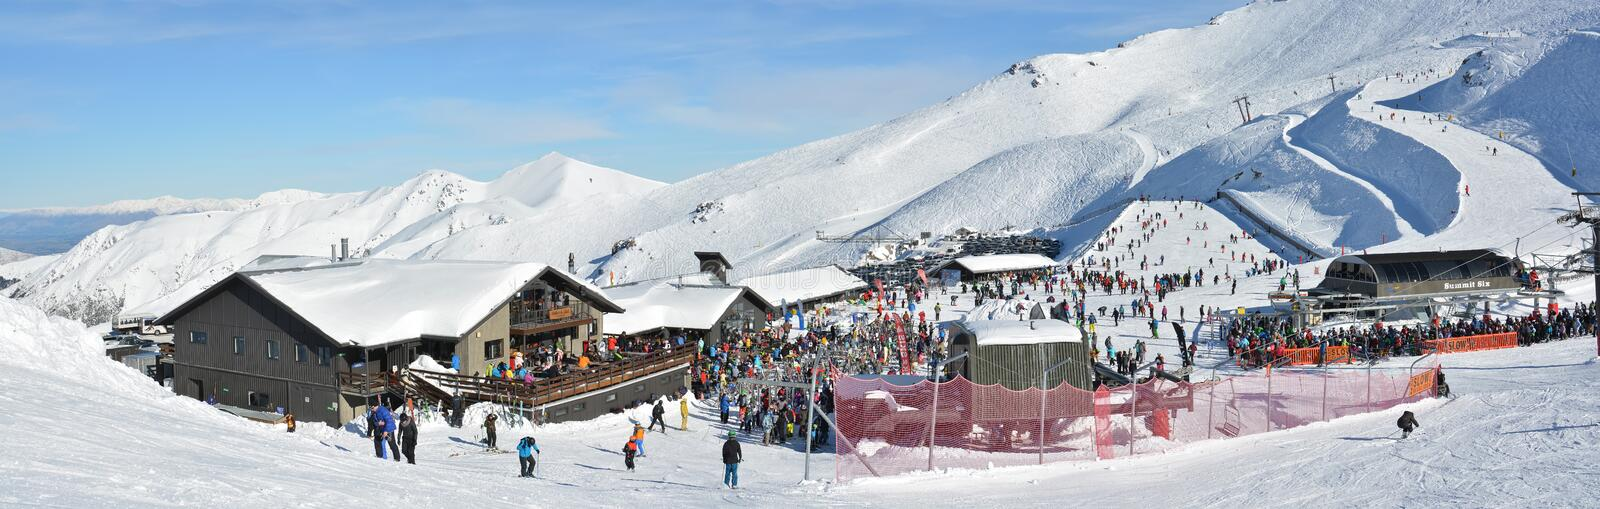 Panorama of Mount Hutt Ski Field at Lunchtime, New Zealand stock image